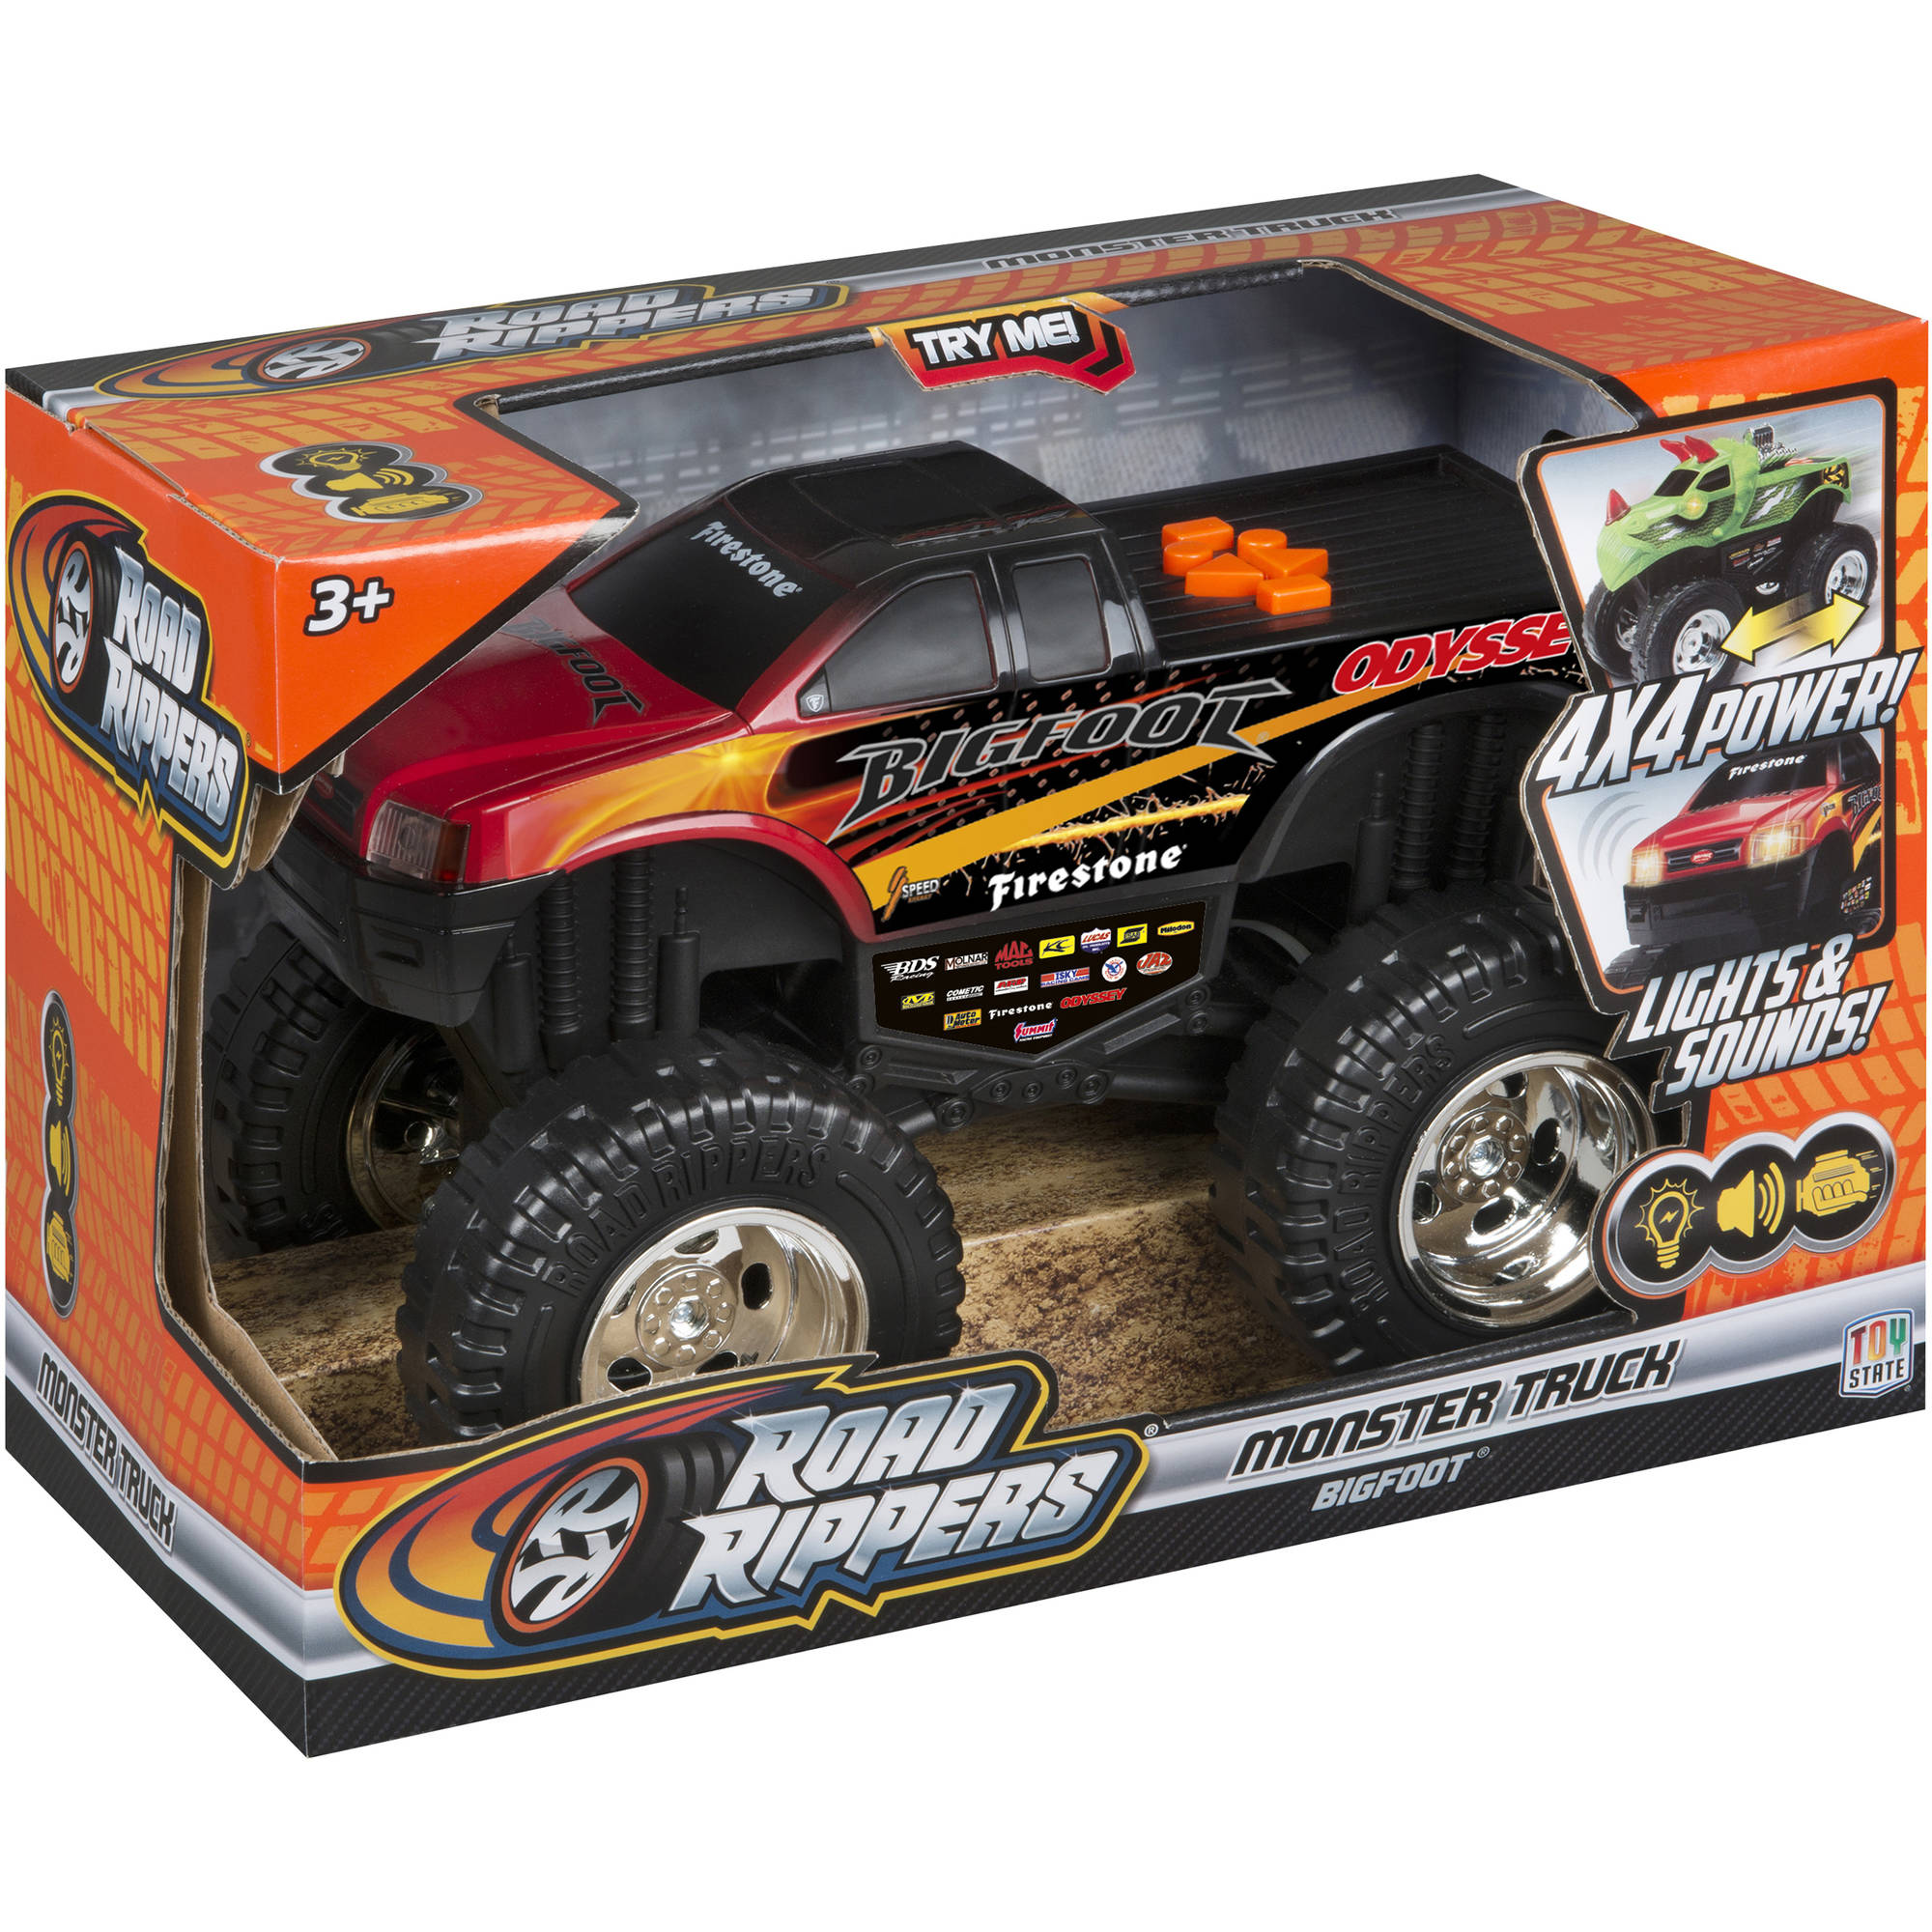 "Road Rippers 10"" Monster R/C Truck, Bigfoot"